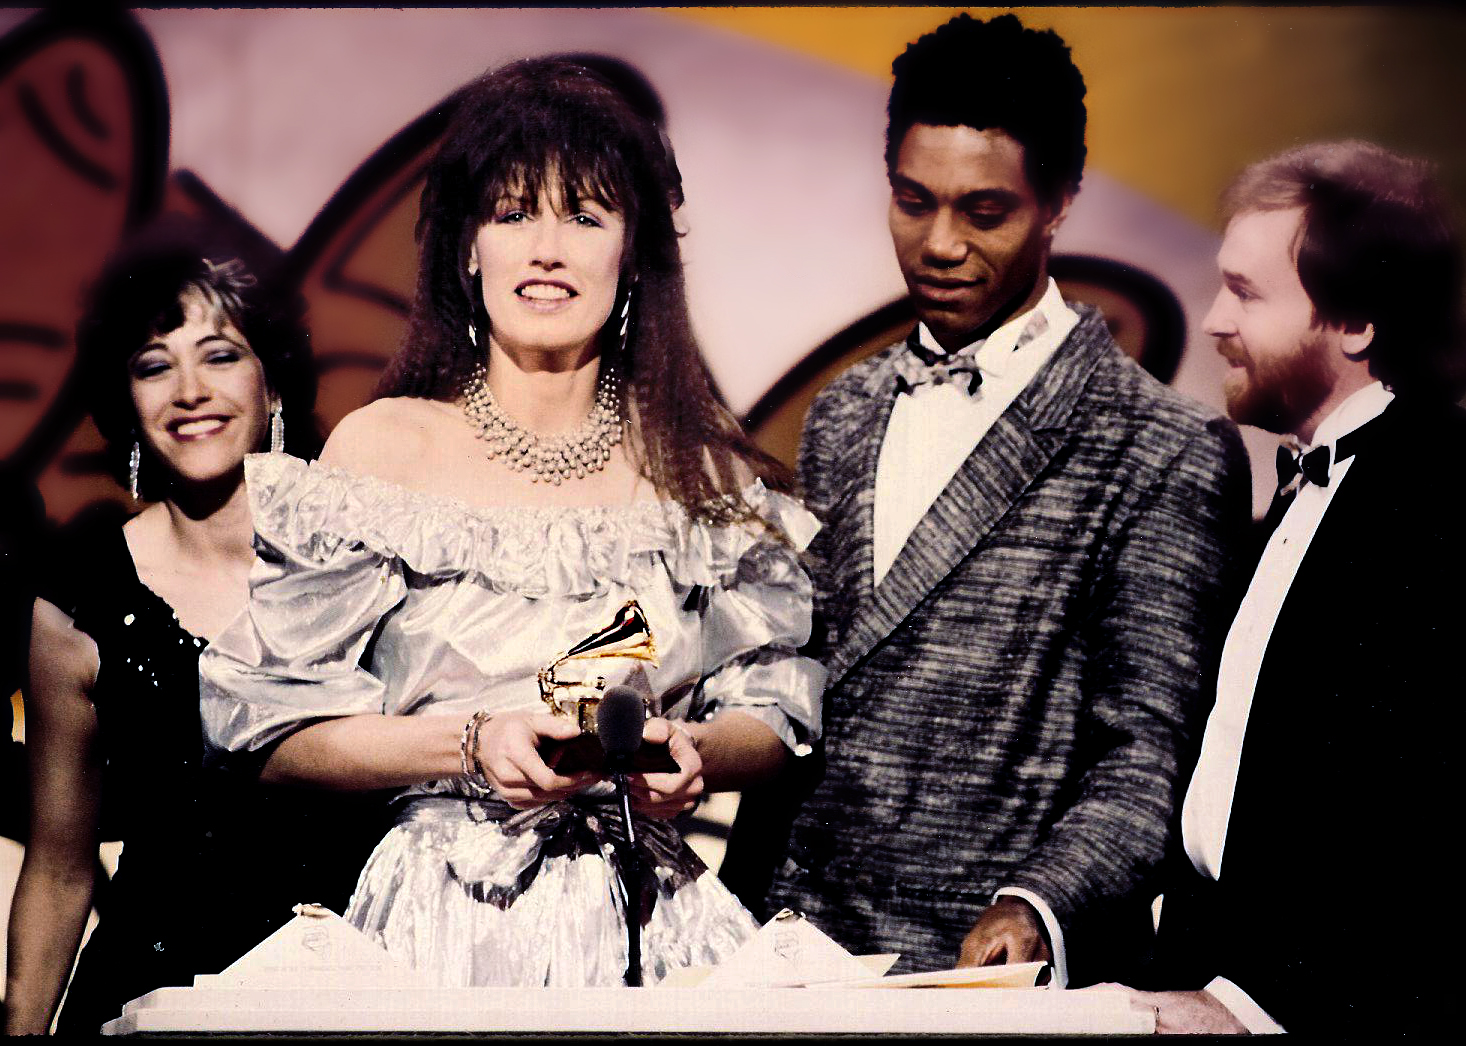 Darlene Accepting Grammy